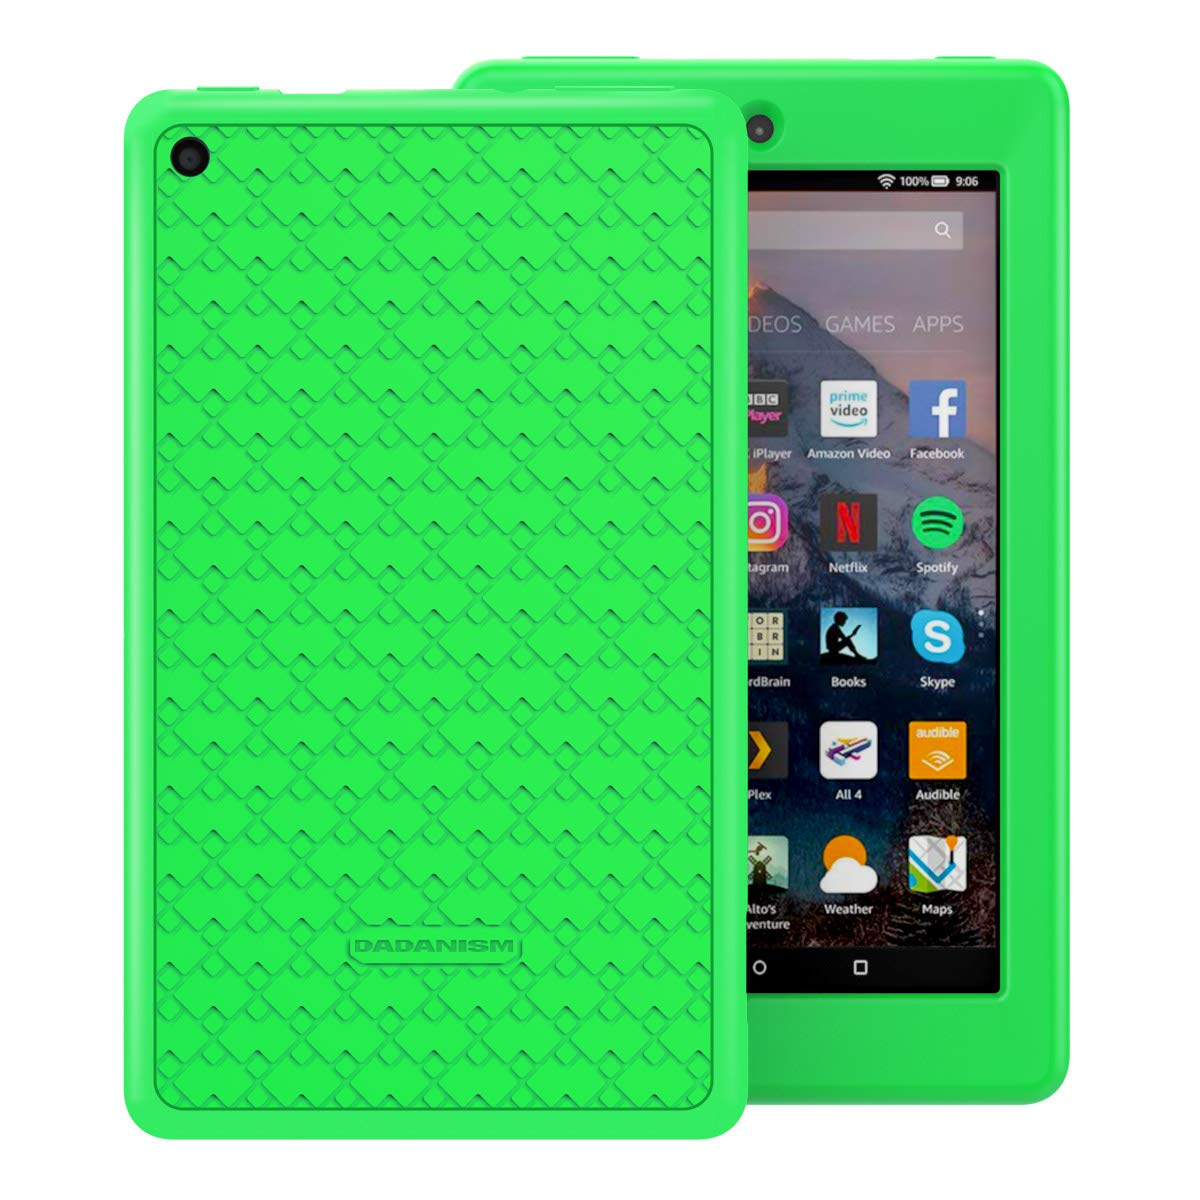 Dadanism Silicone Case Fits All-New Amazon Kindle Fire 7 Tablet (9th Generation, 2019 Release Only), Heavy Duty Lightweight Shock Proof Kids Friendly Protective Back Cover, Corner Protection - Green